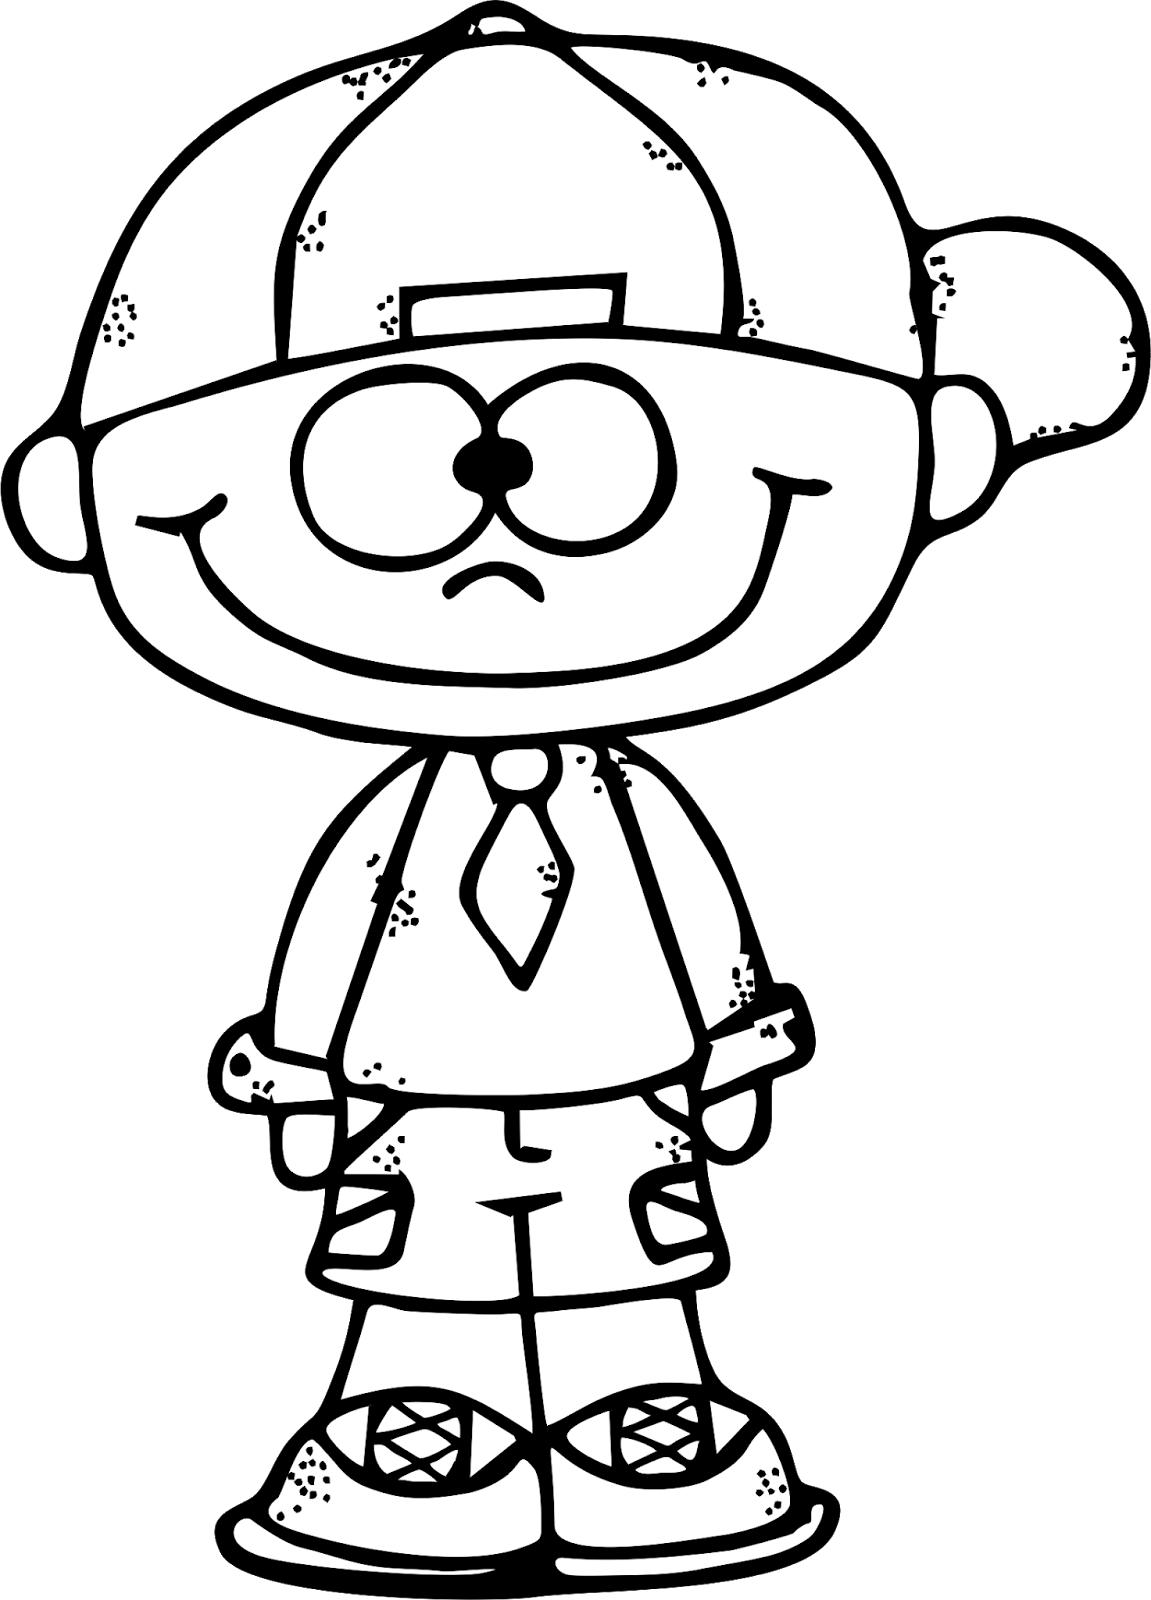 Boy 2 Bw Png 1151 1600 Clip Art Freebies Coloring Pages Art Drawings For Kids